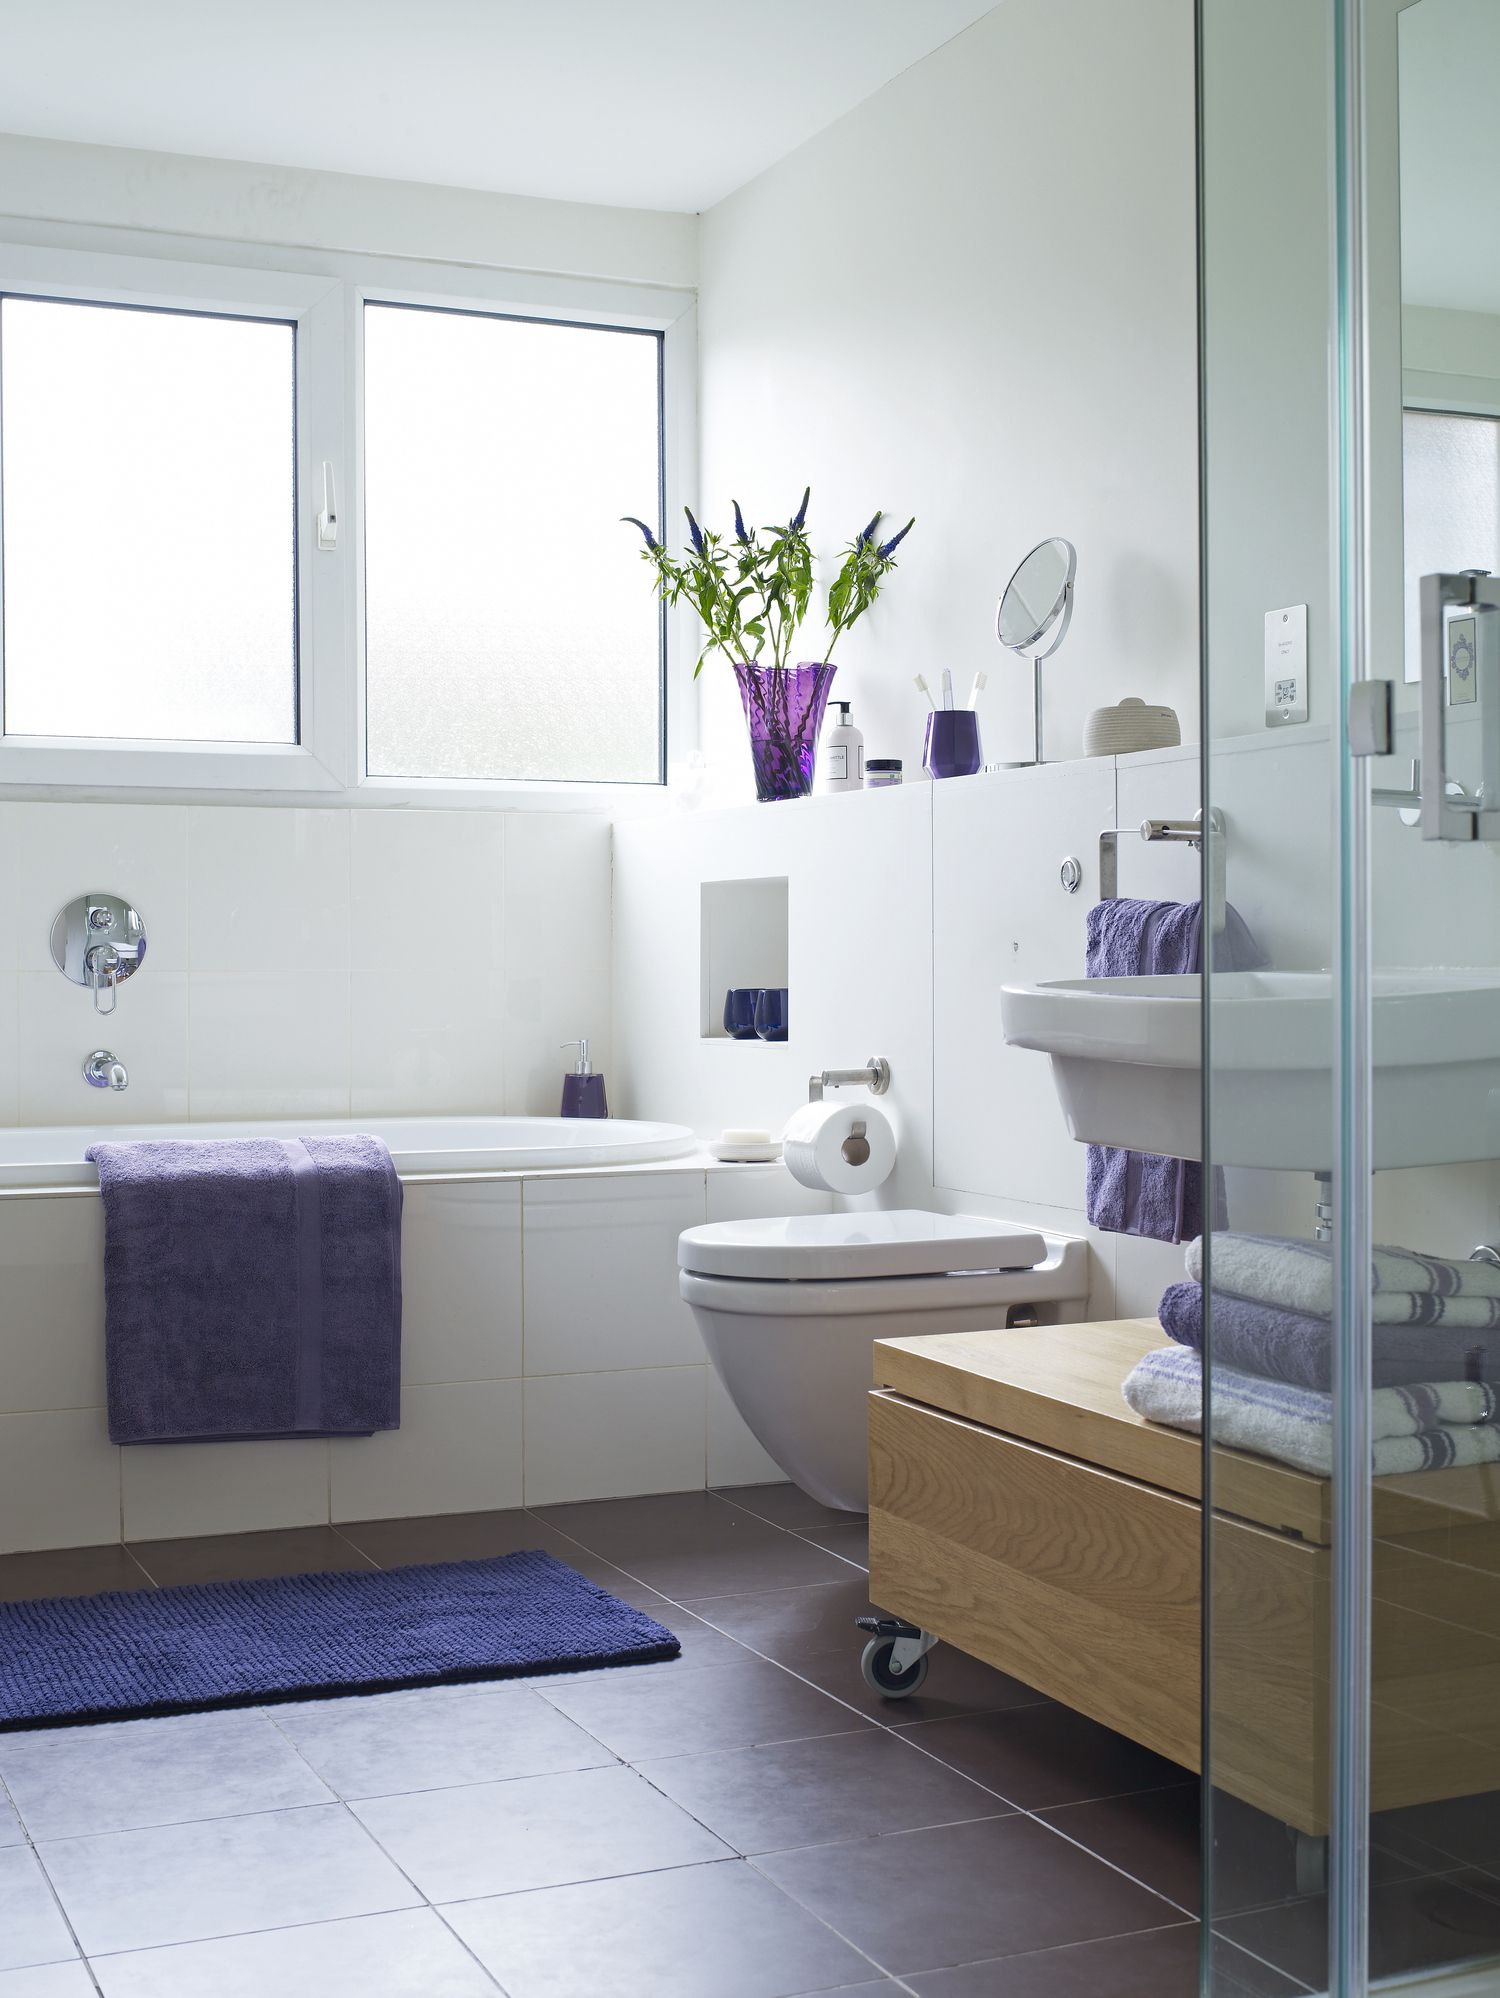 5 Decorating Ideas For Small Bathrooms: 25 Killer Small Bathroom Design Tips